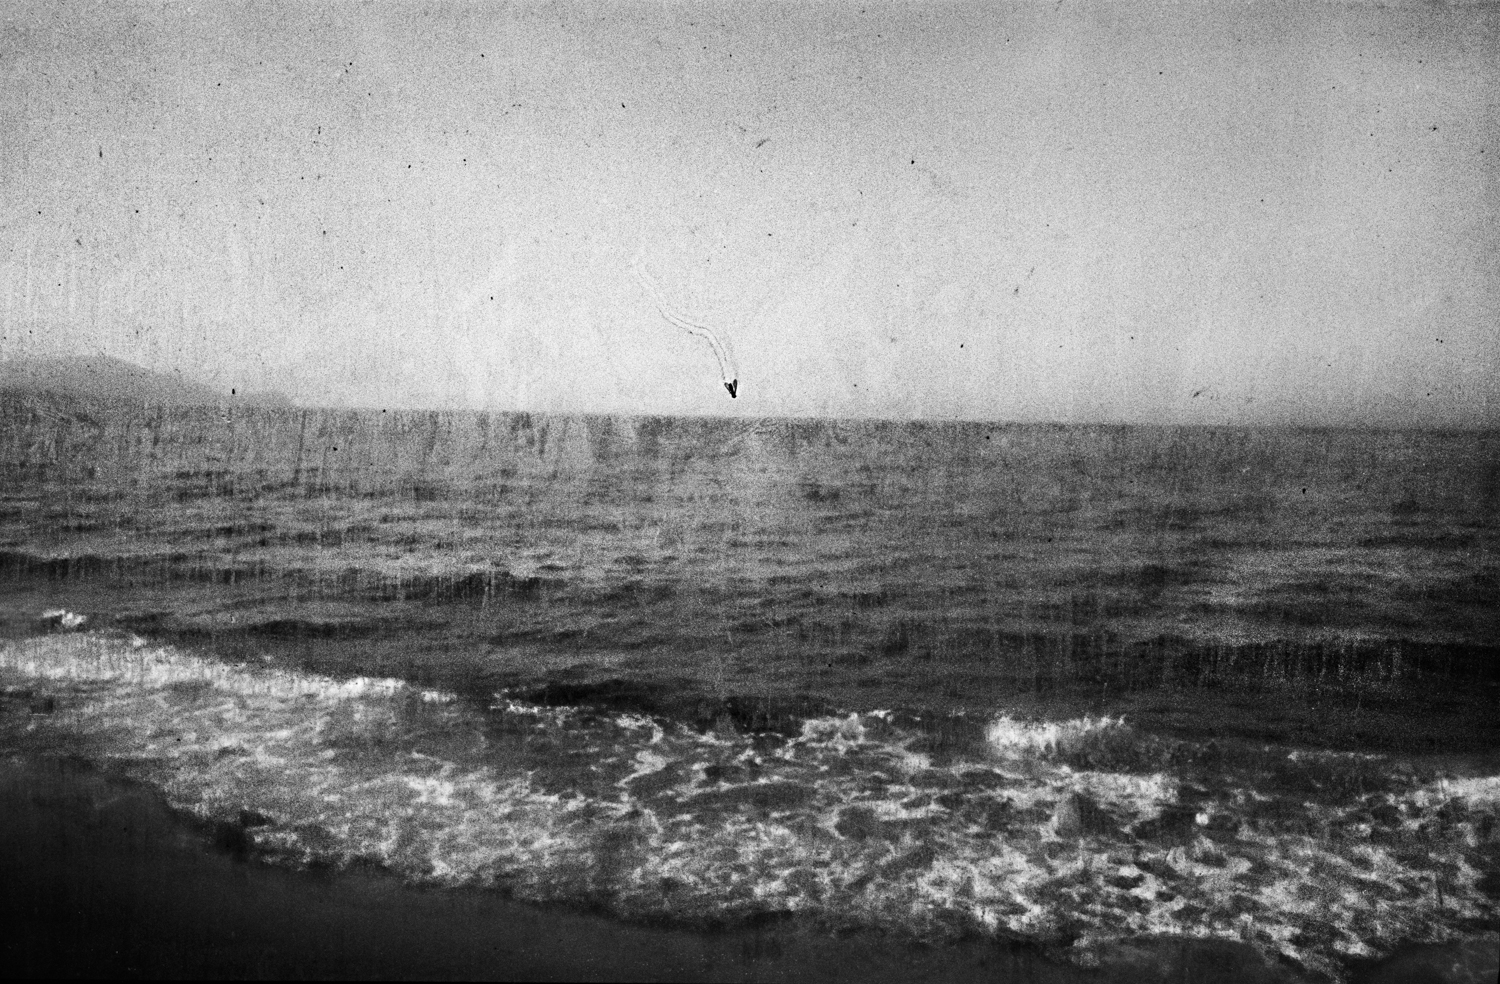 - Tilos2012Archival pigment printedition of 620 x 30 inches